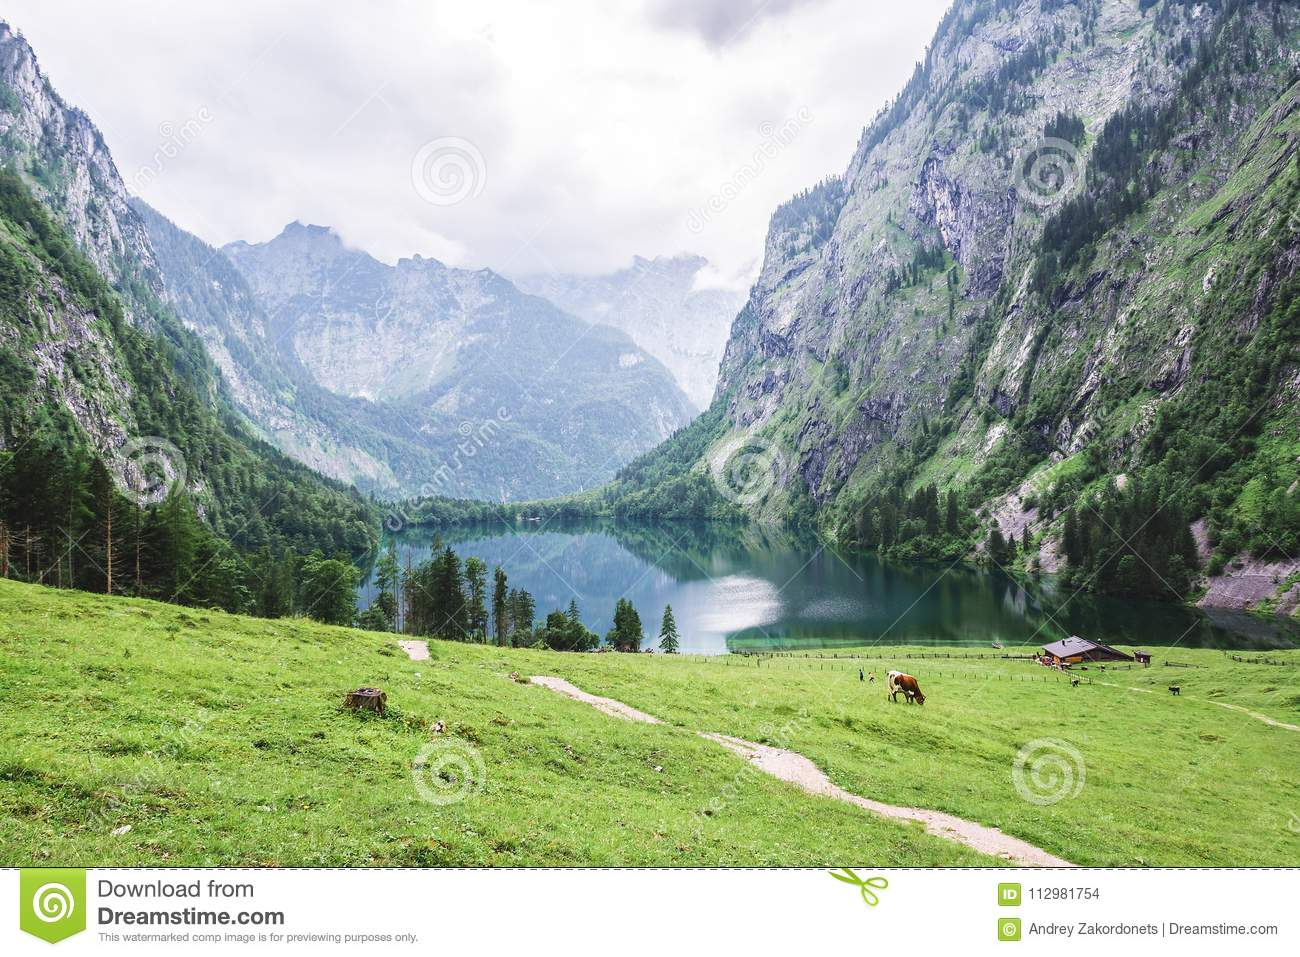 Lake Obersee, Sch nau am Konigssee, Bavaria, Germany. Great alpine scenery with cows in National Park Berchtesgaden.